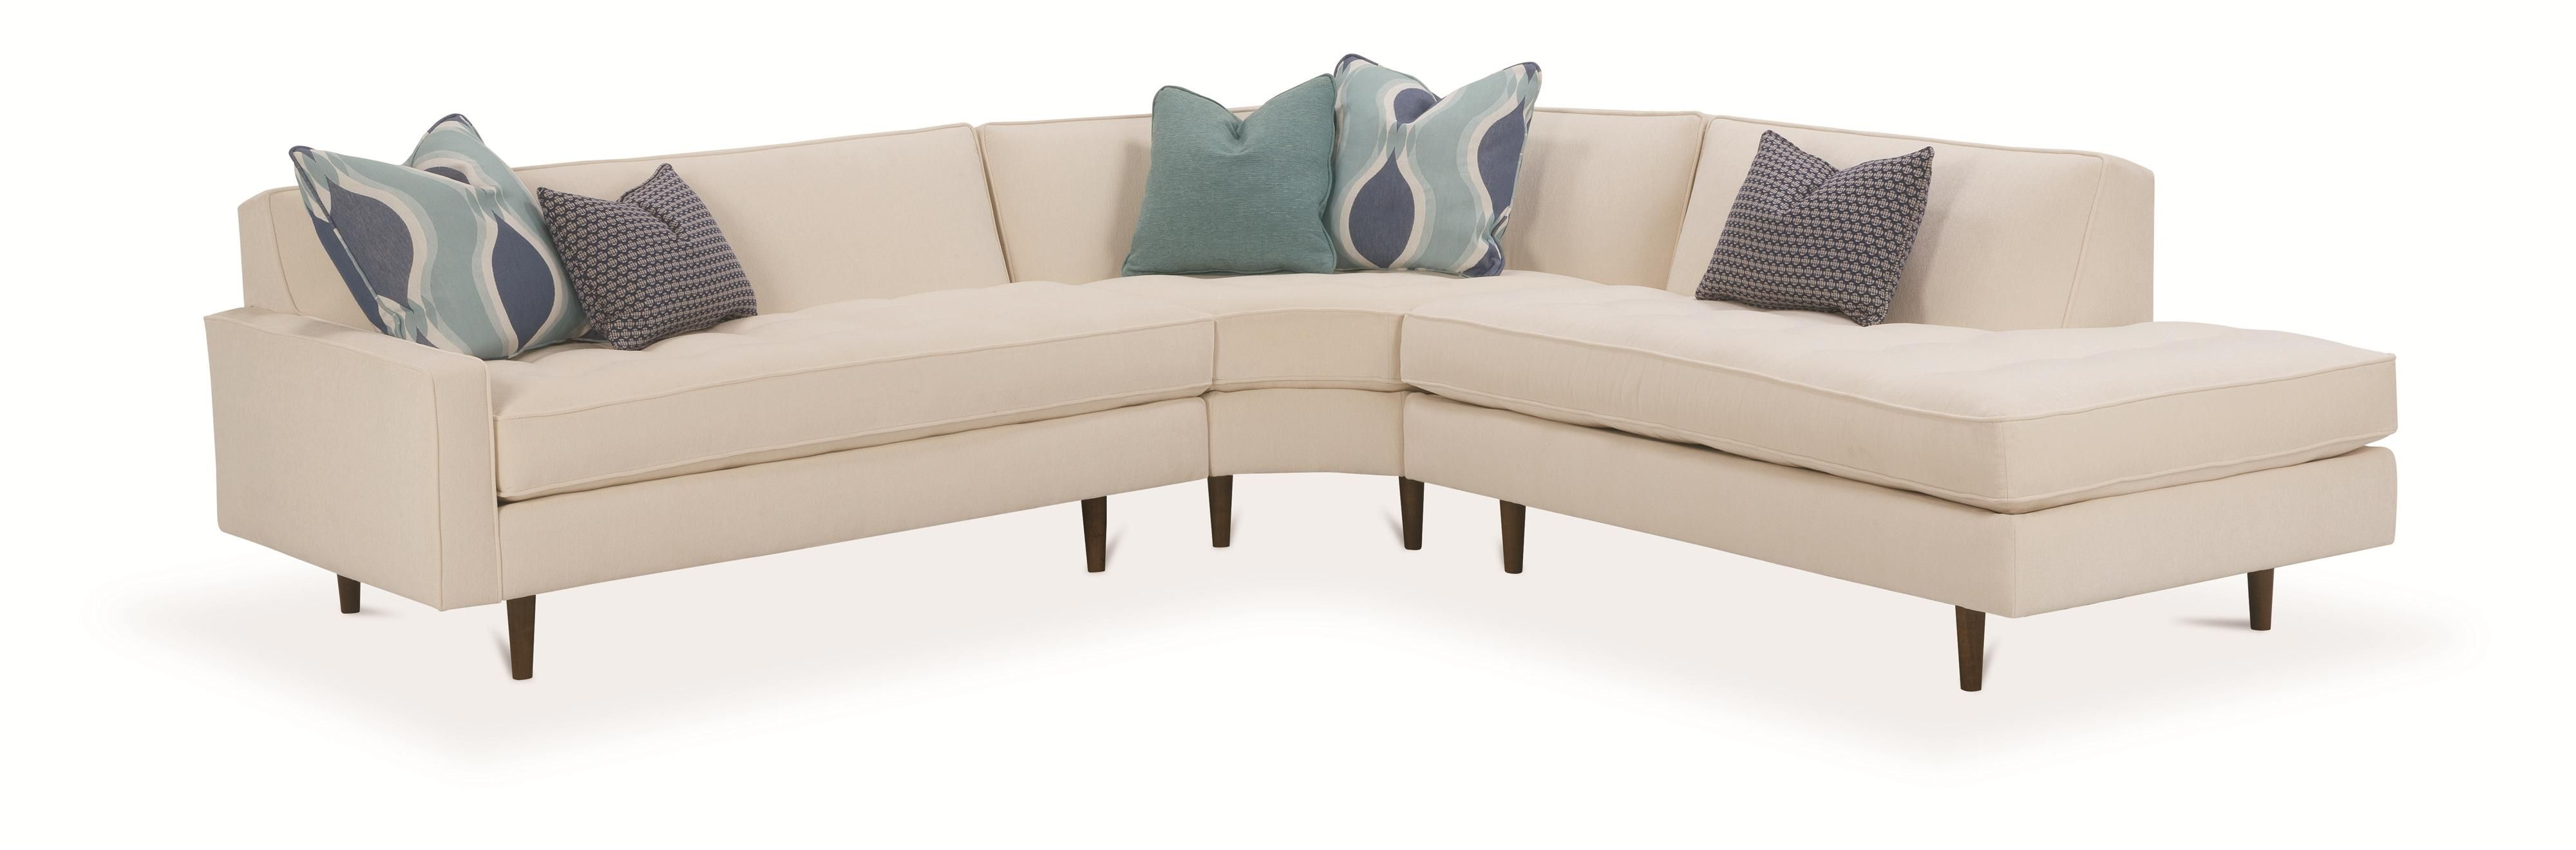 Rowe Brady Contemporary 3 Piece Sectional Sofa Reeds Furniture